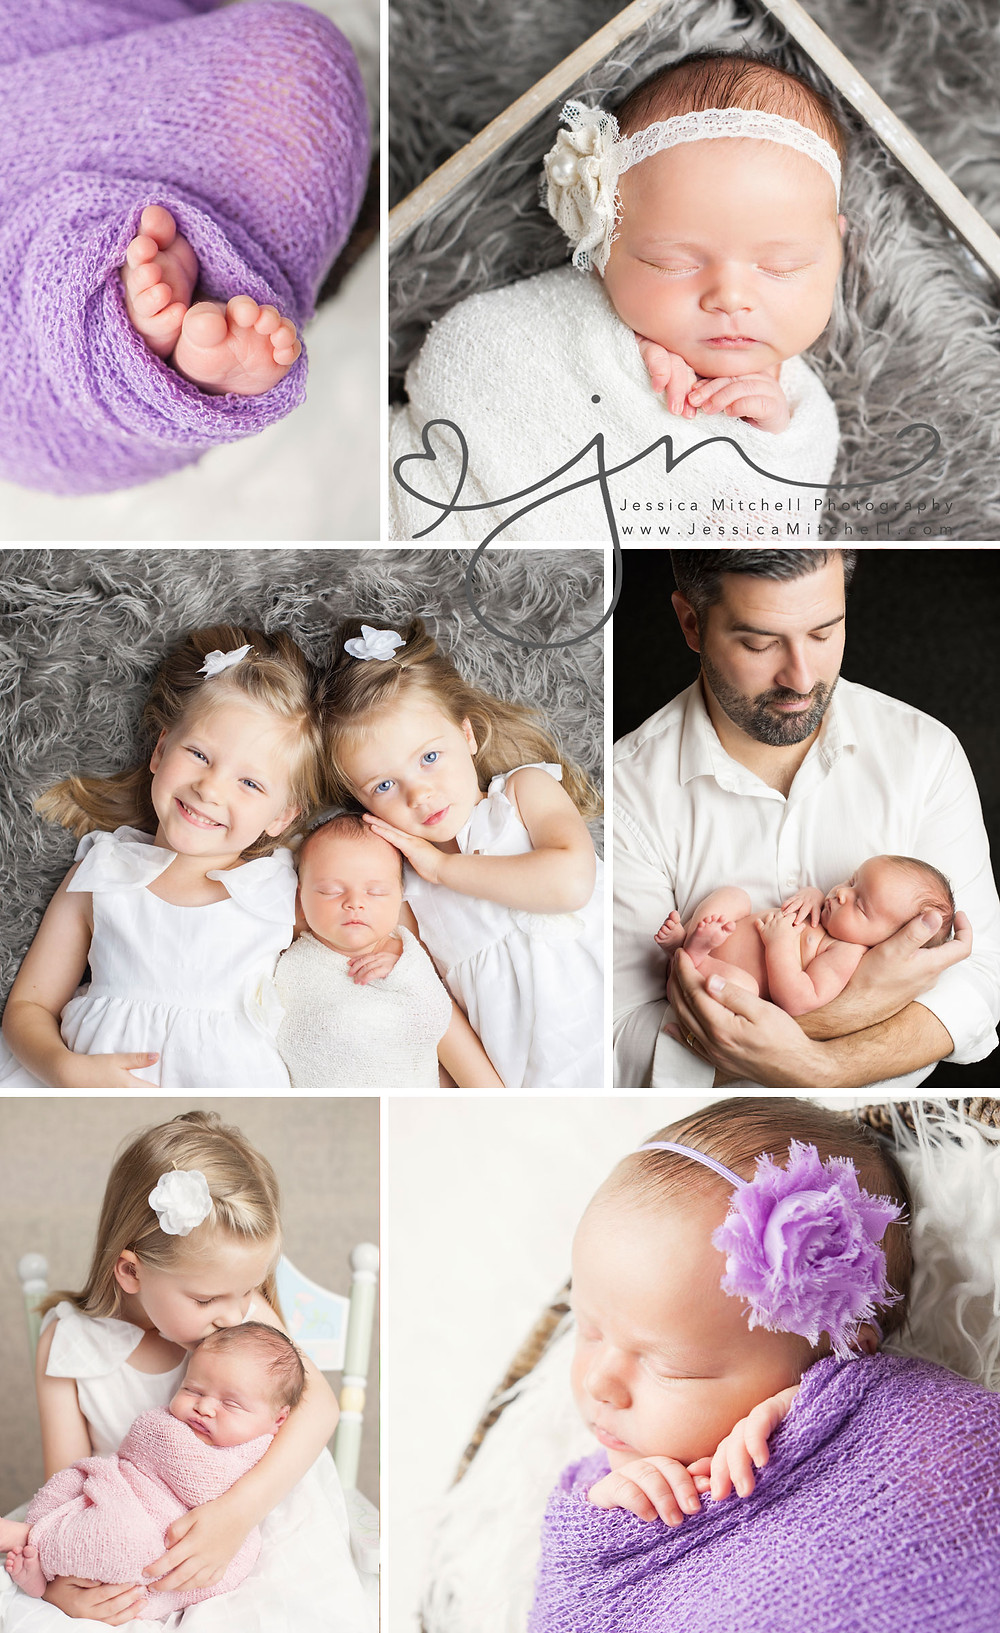 Newborn-Photographer-Austin-Tx-Children-Photography-Jessica-Mitchell